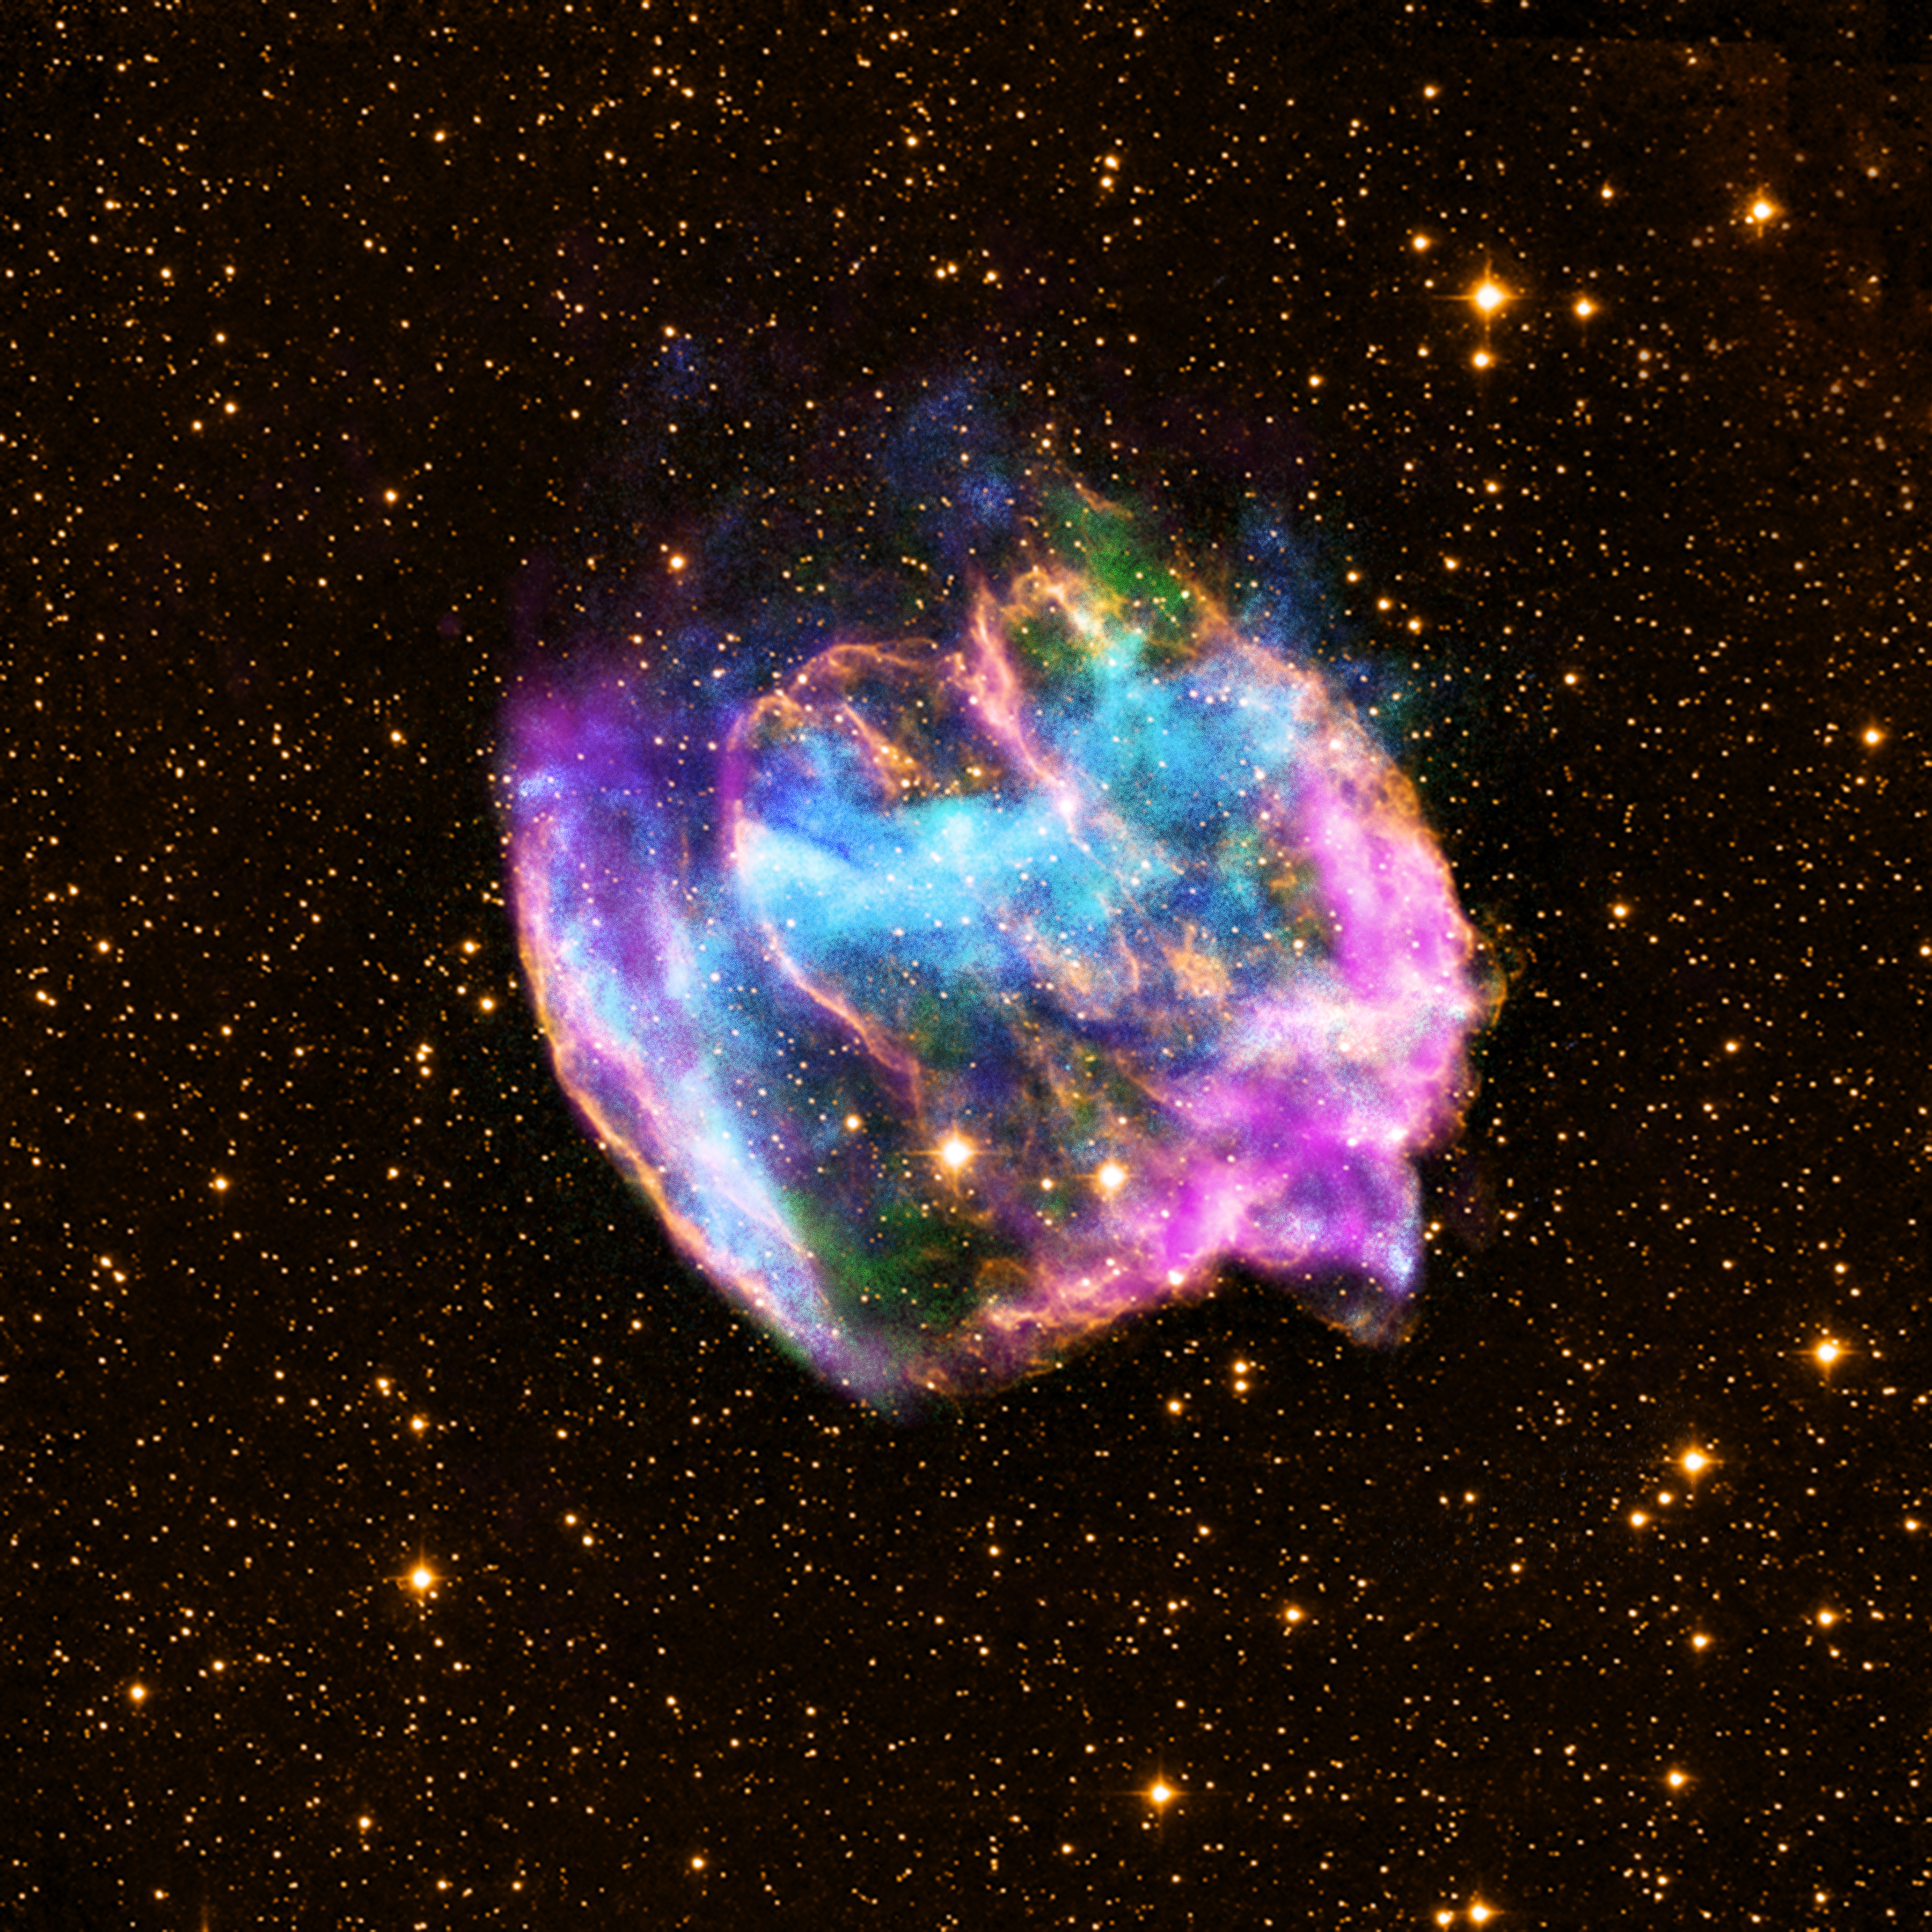 As a star's shell explodes outward, its core squeezes inward. The result can be a black hole or neutron star. This highly distorted supernova remnant, called W49B, may contain the most recent black hole formed in the Milky Way galaxy.